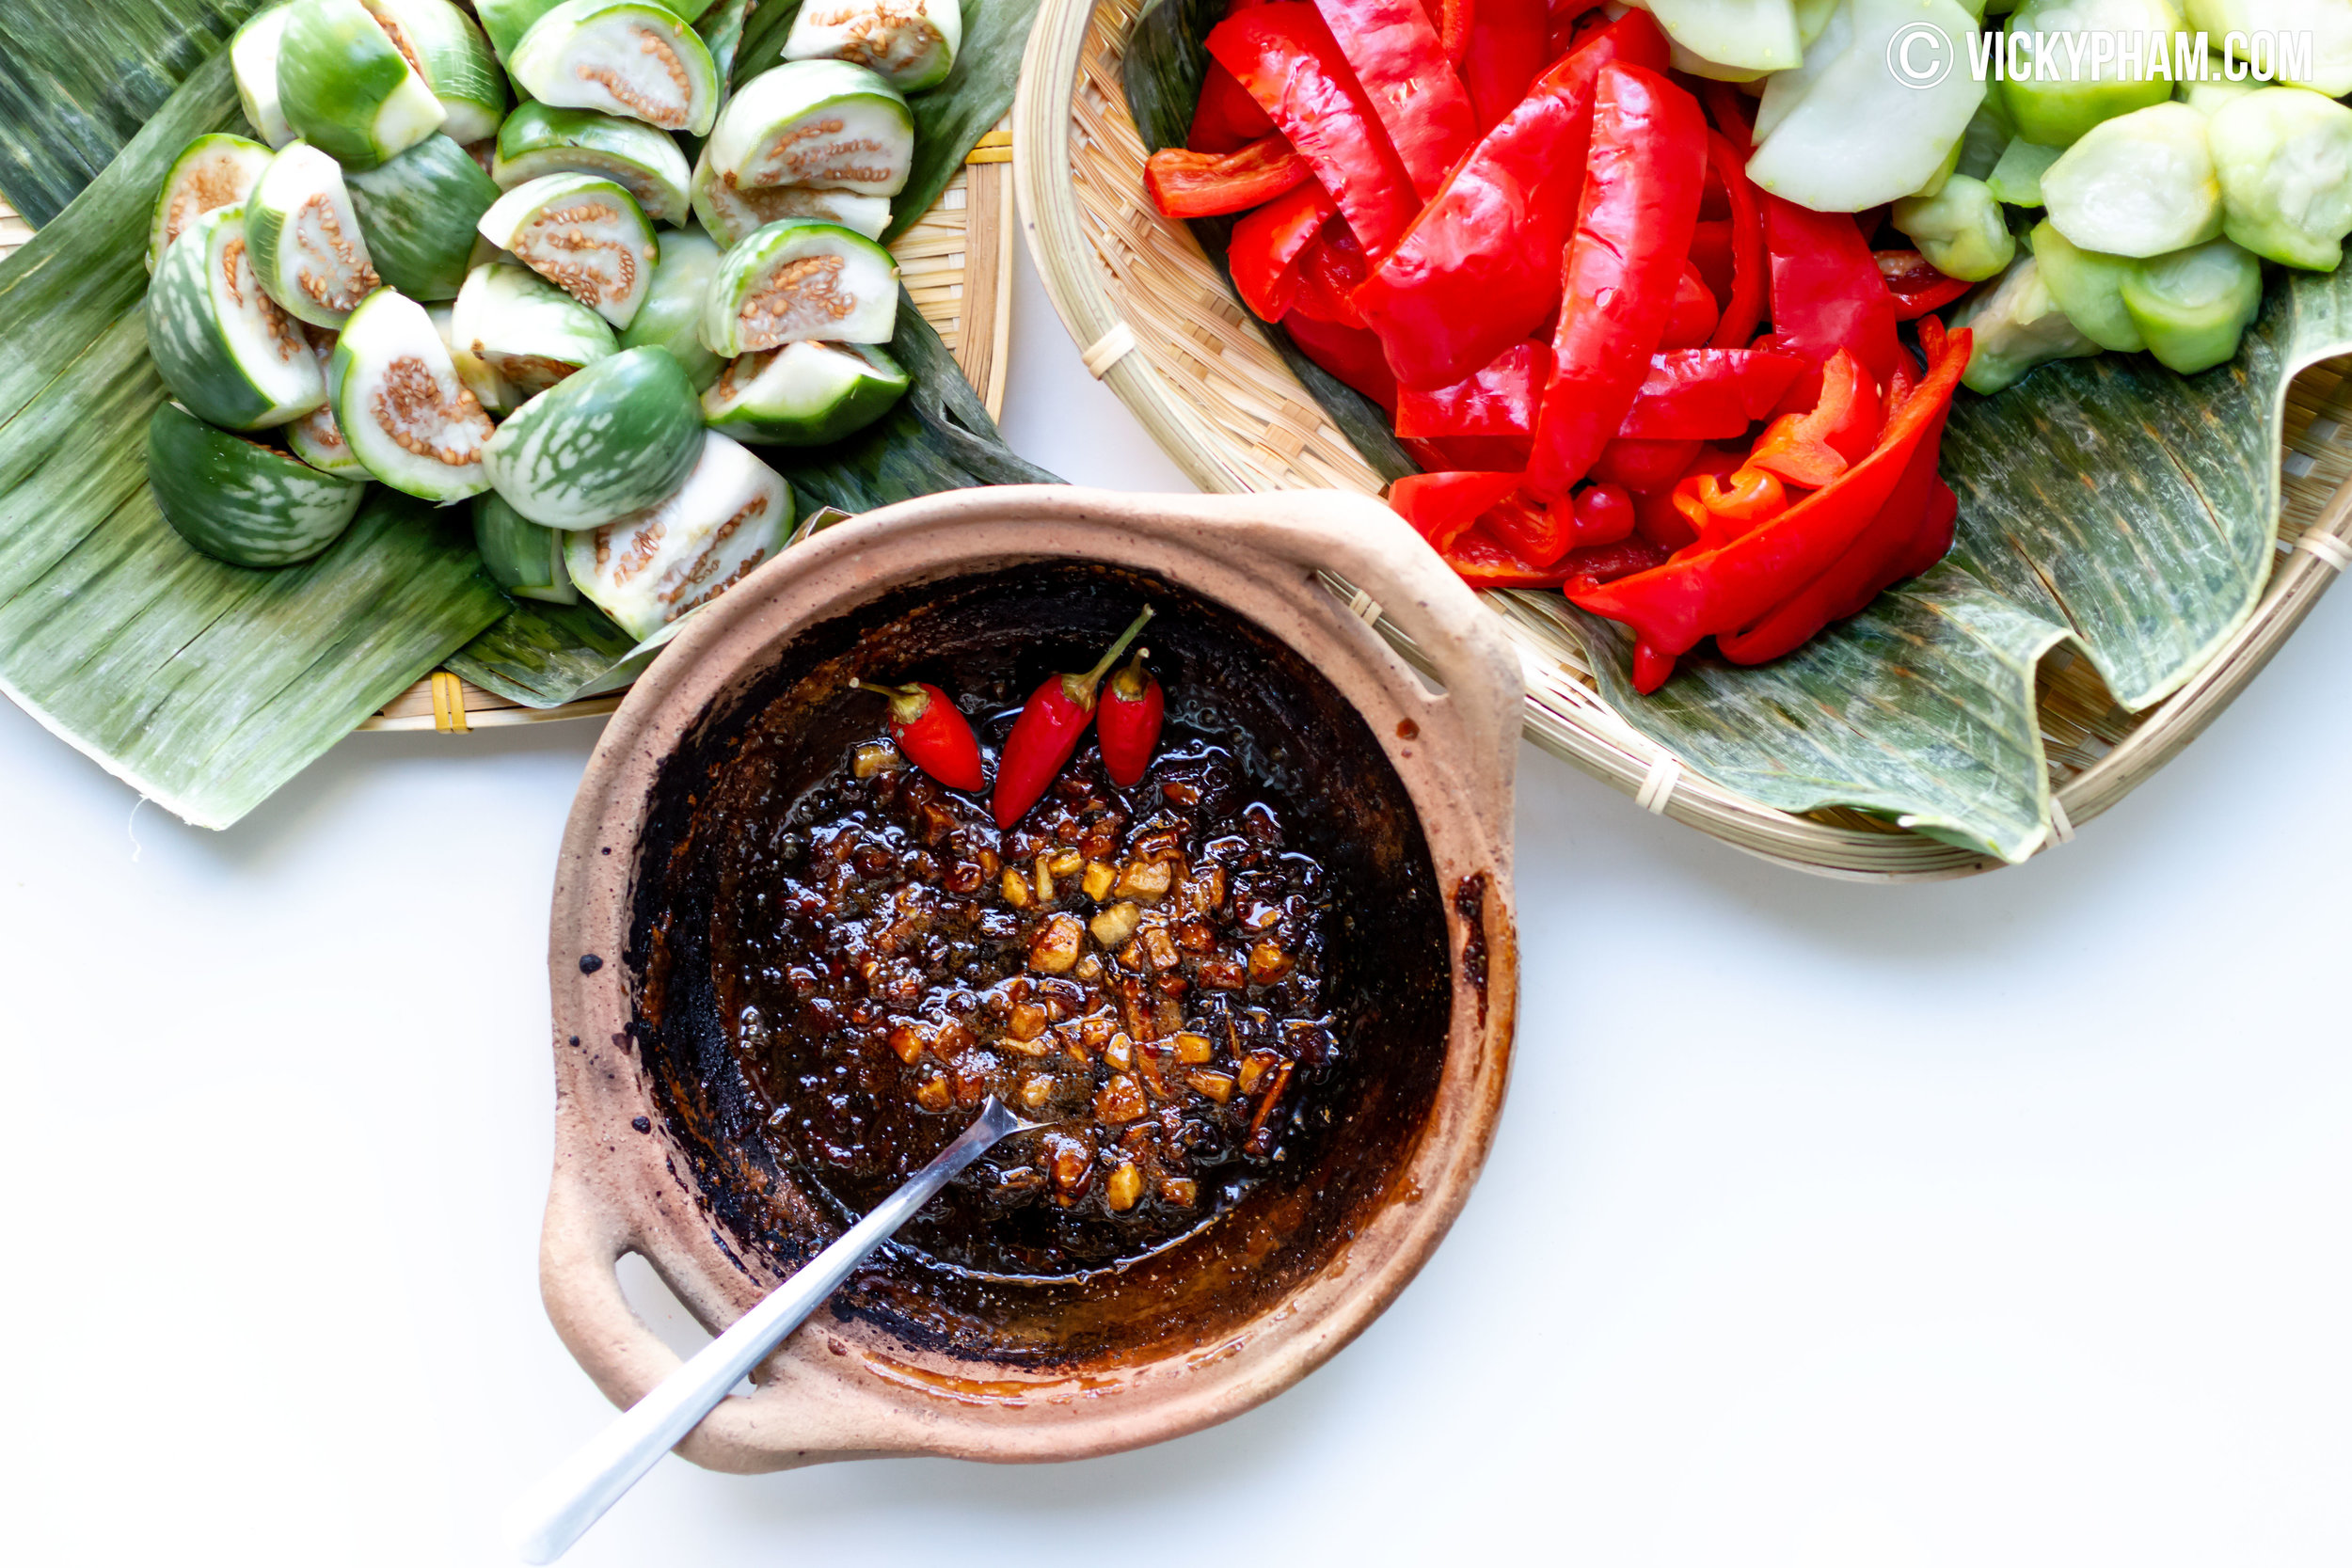 Vietnamese Vegetable Dipping Sauce with Caramelized Fish Sauce (Mam Kho Quet)